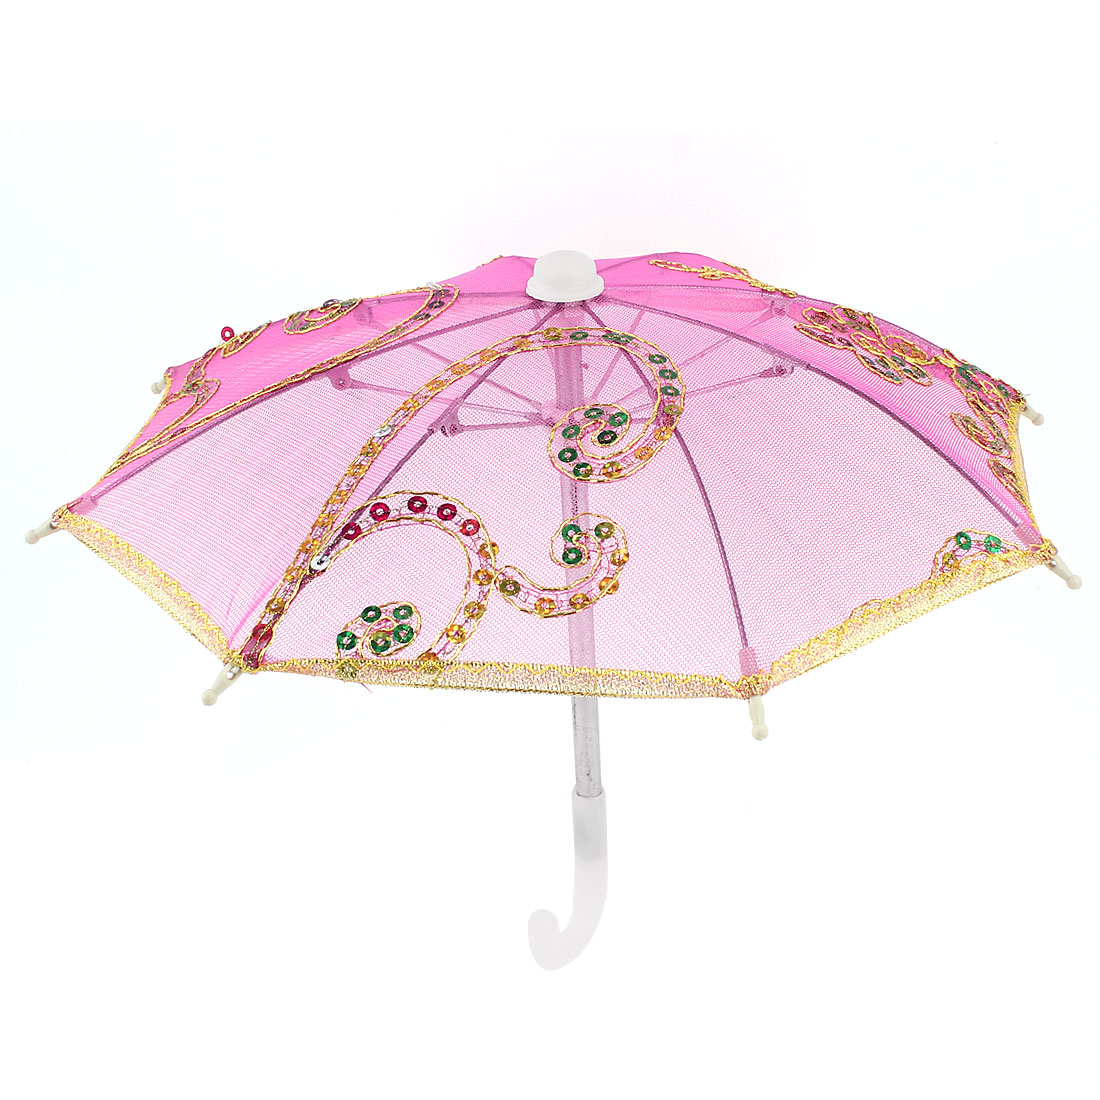 Gold Tone Embroidery Flower Folding Mini Dancing Parasol Umbrella Fuchsia